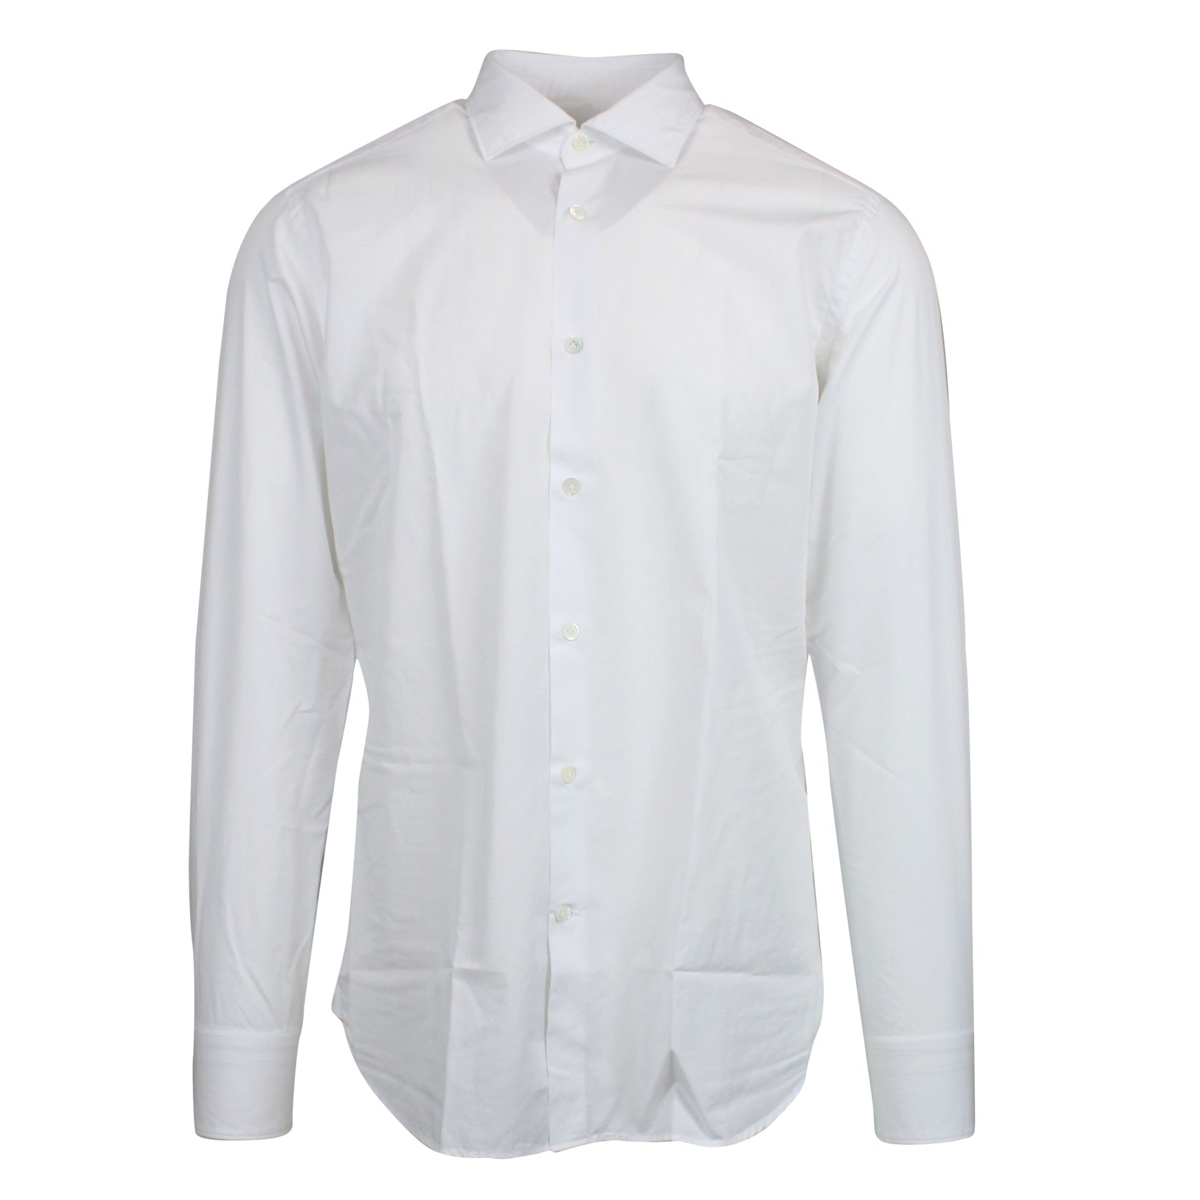 Custom-fit French collar shirt White Guglilminotti